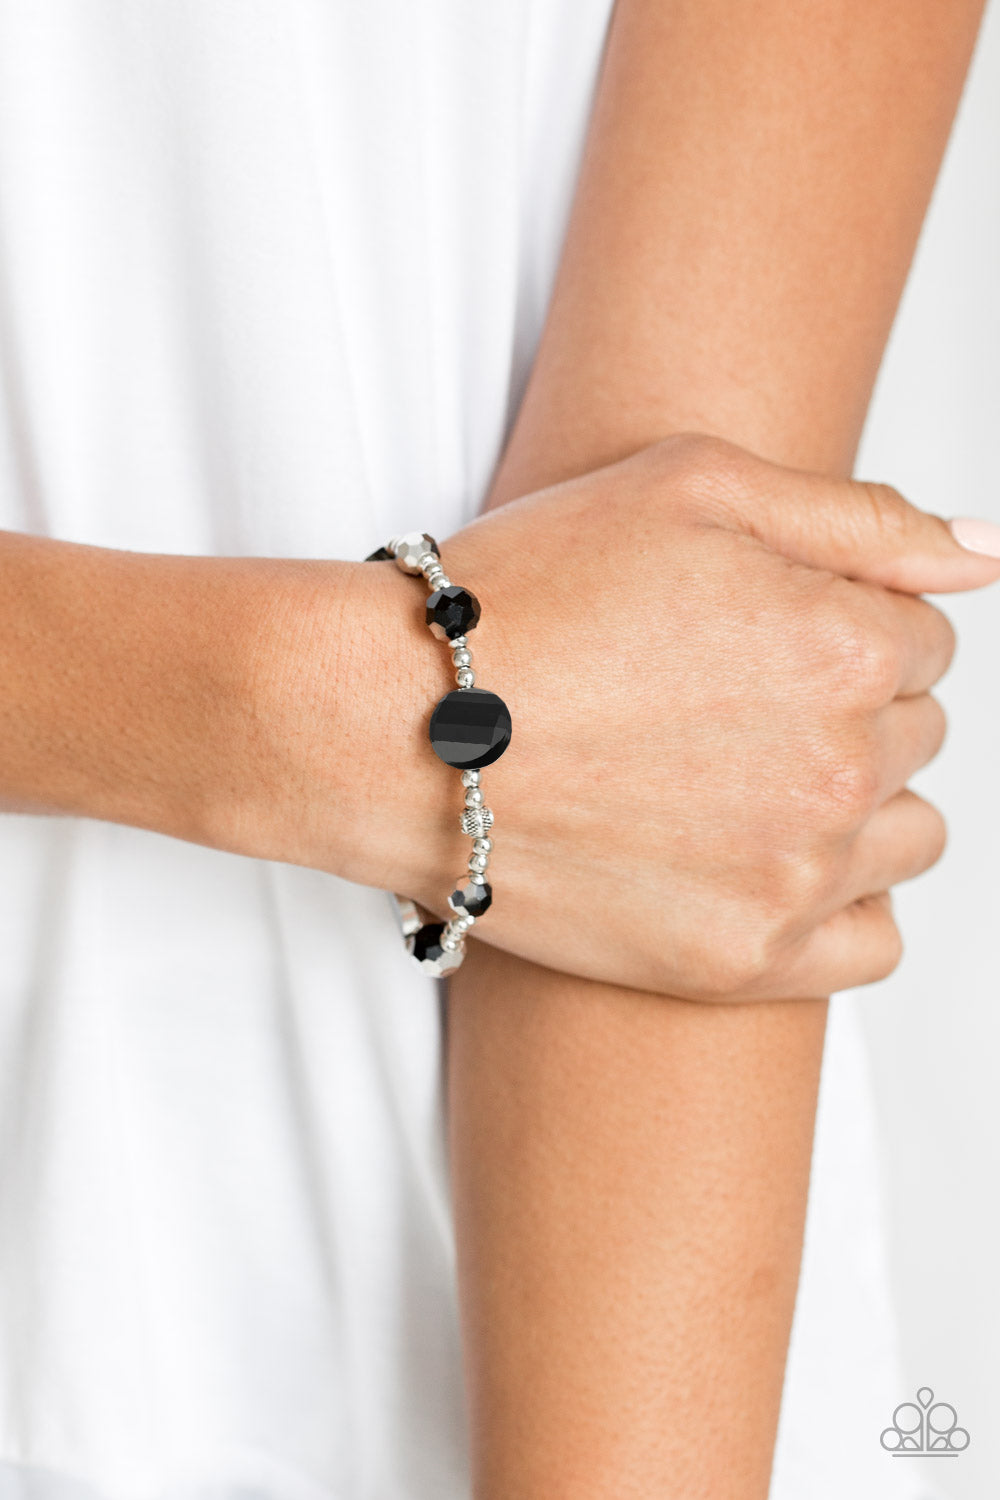 Starry-Eyed Elegance - Black - Bracelet